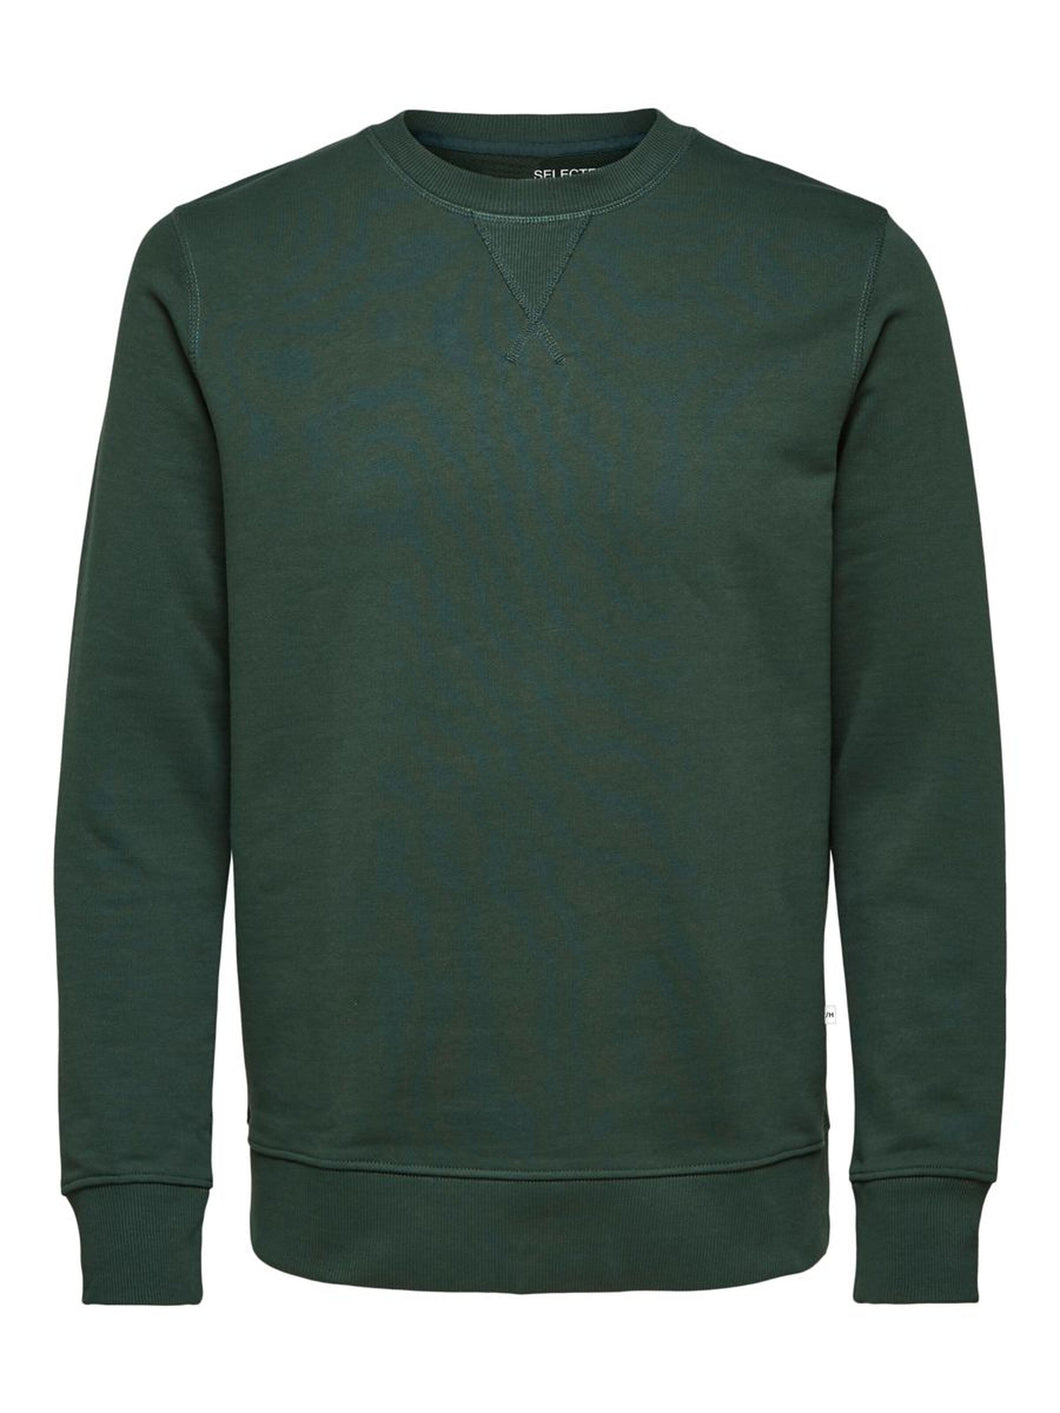 Selected JASON340 CREW NECK Green